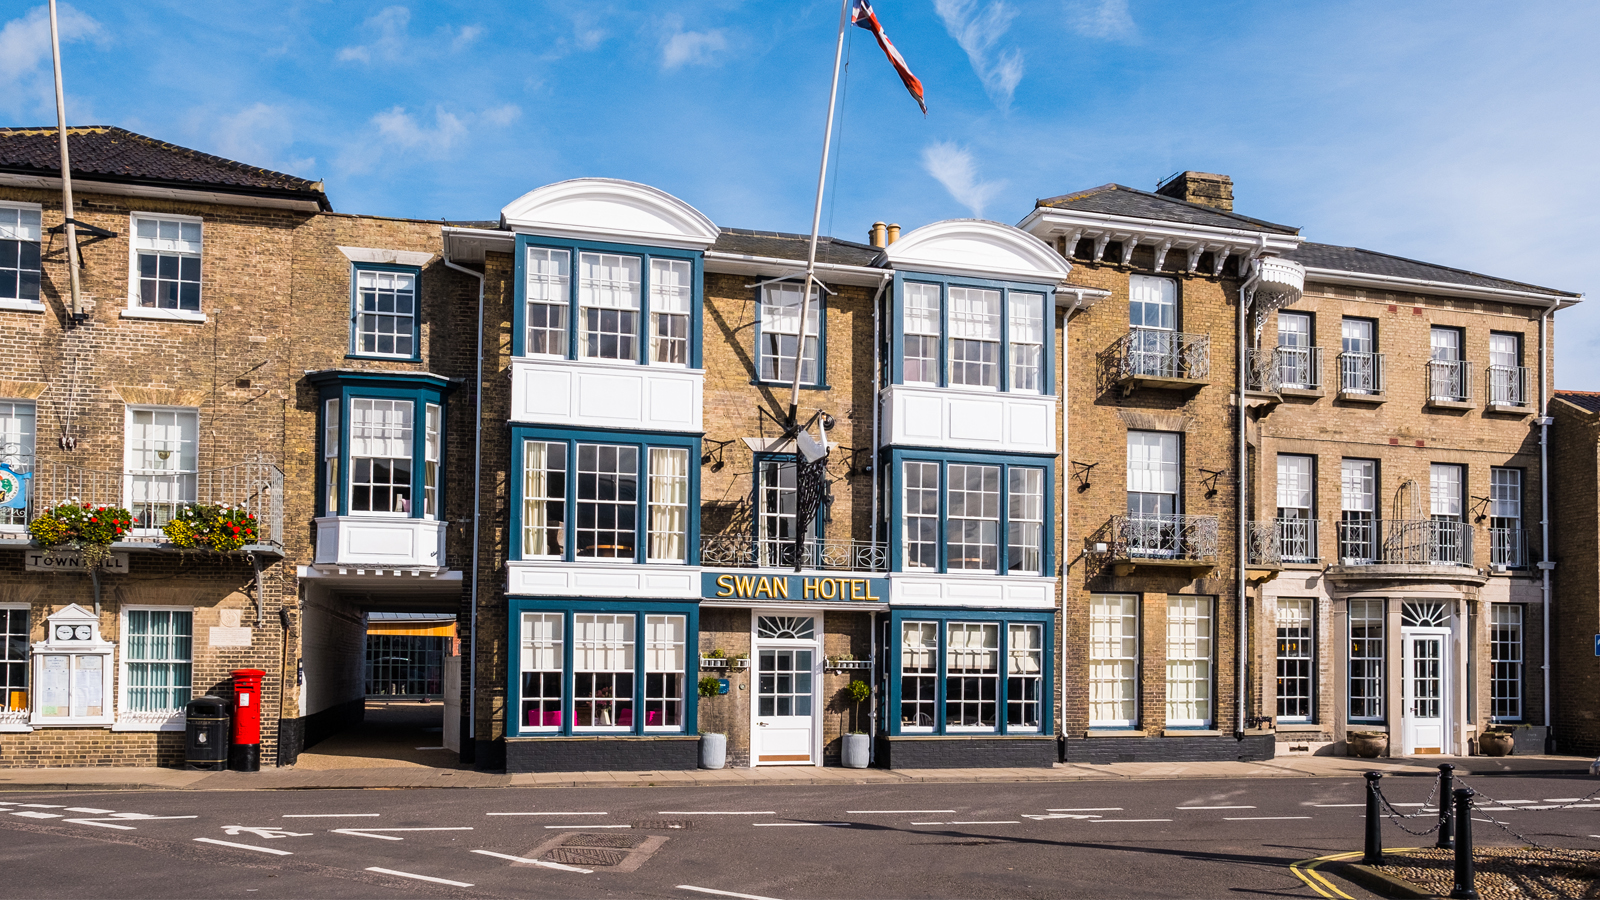 Win a night at Adnams' Swan Hotel in Southwold!